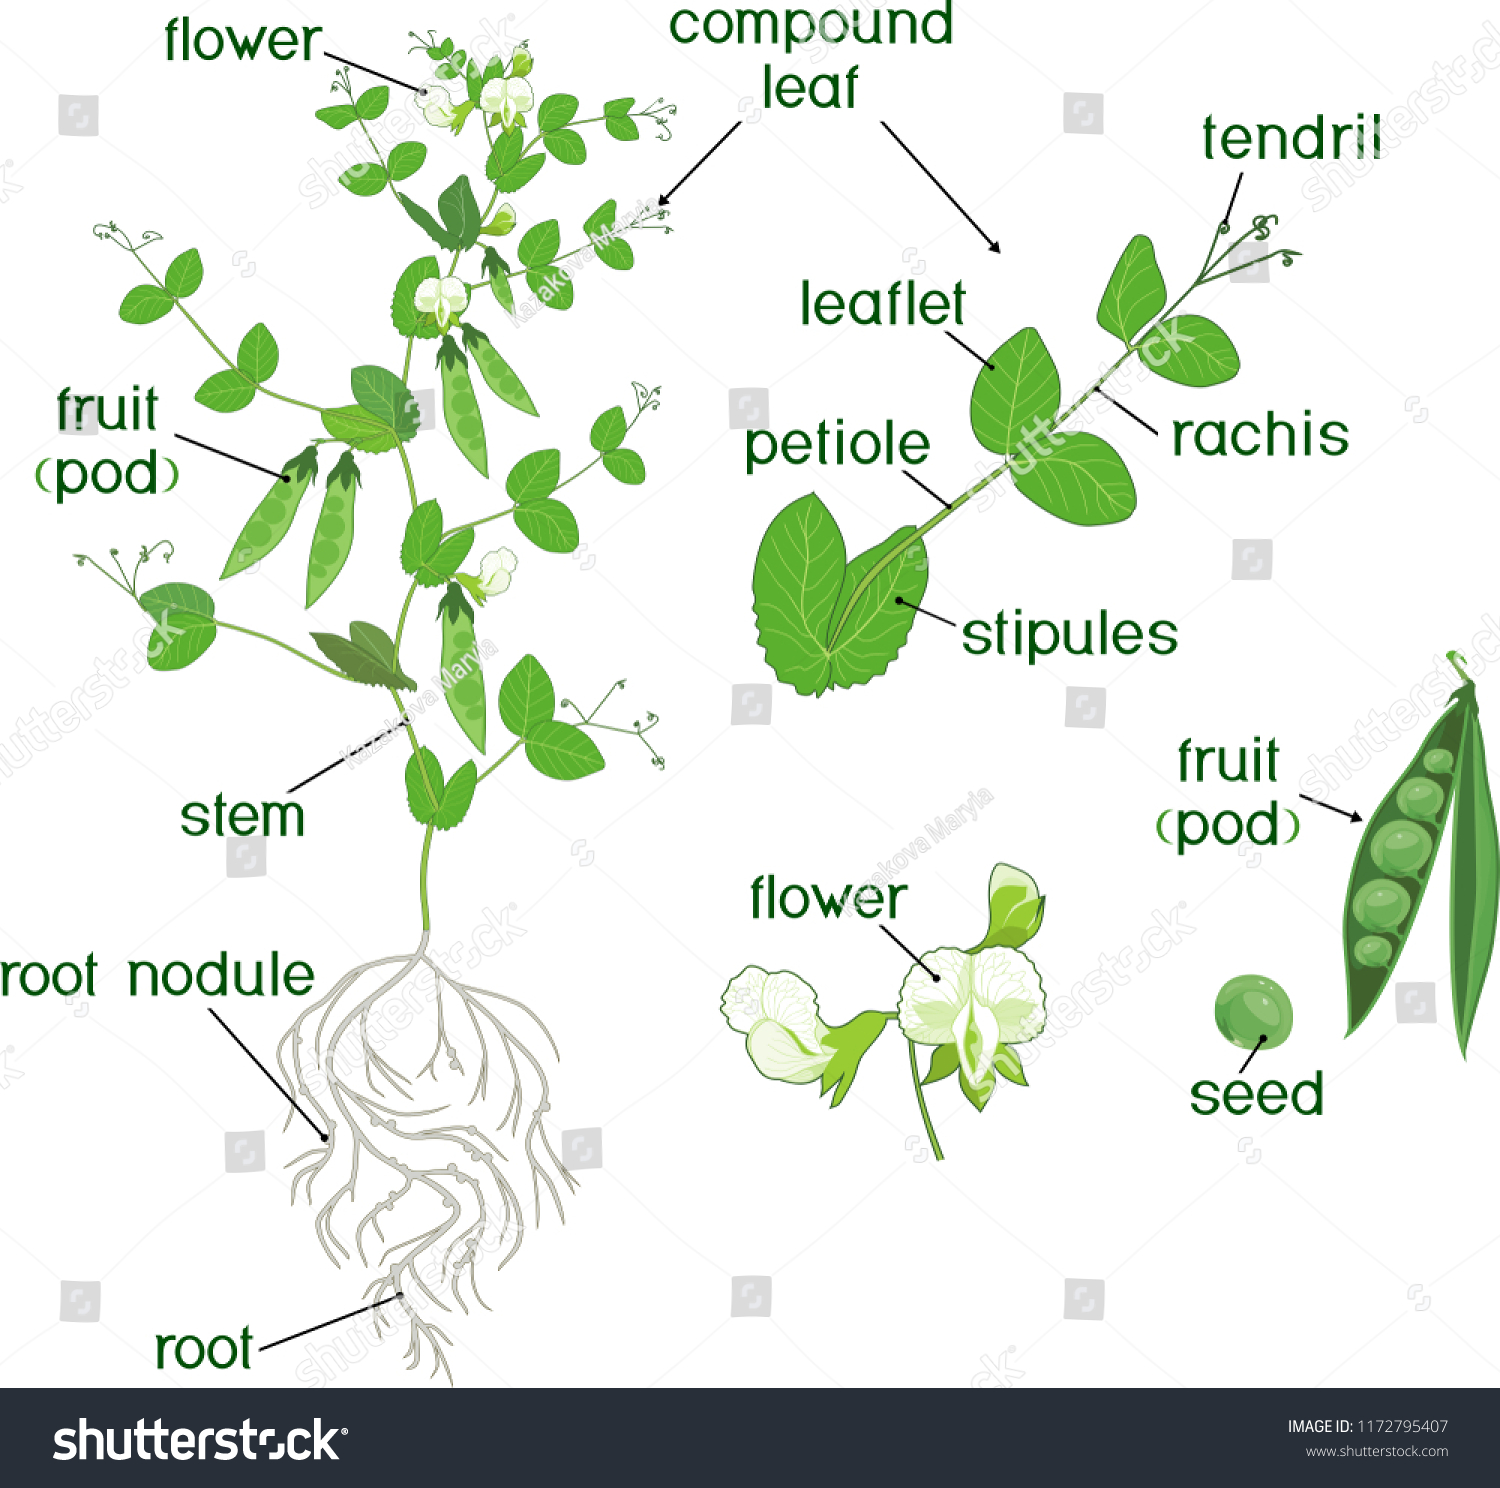 parts plant morphology pea plant fruits stock vector (royalty free Avocado Plant Diagram parts of plant morphology of pea plant with fruits, flowers, green leaves and